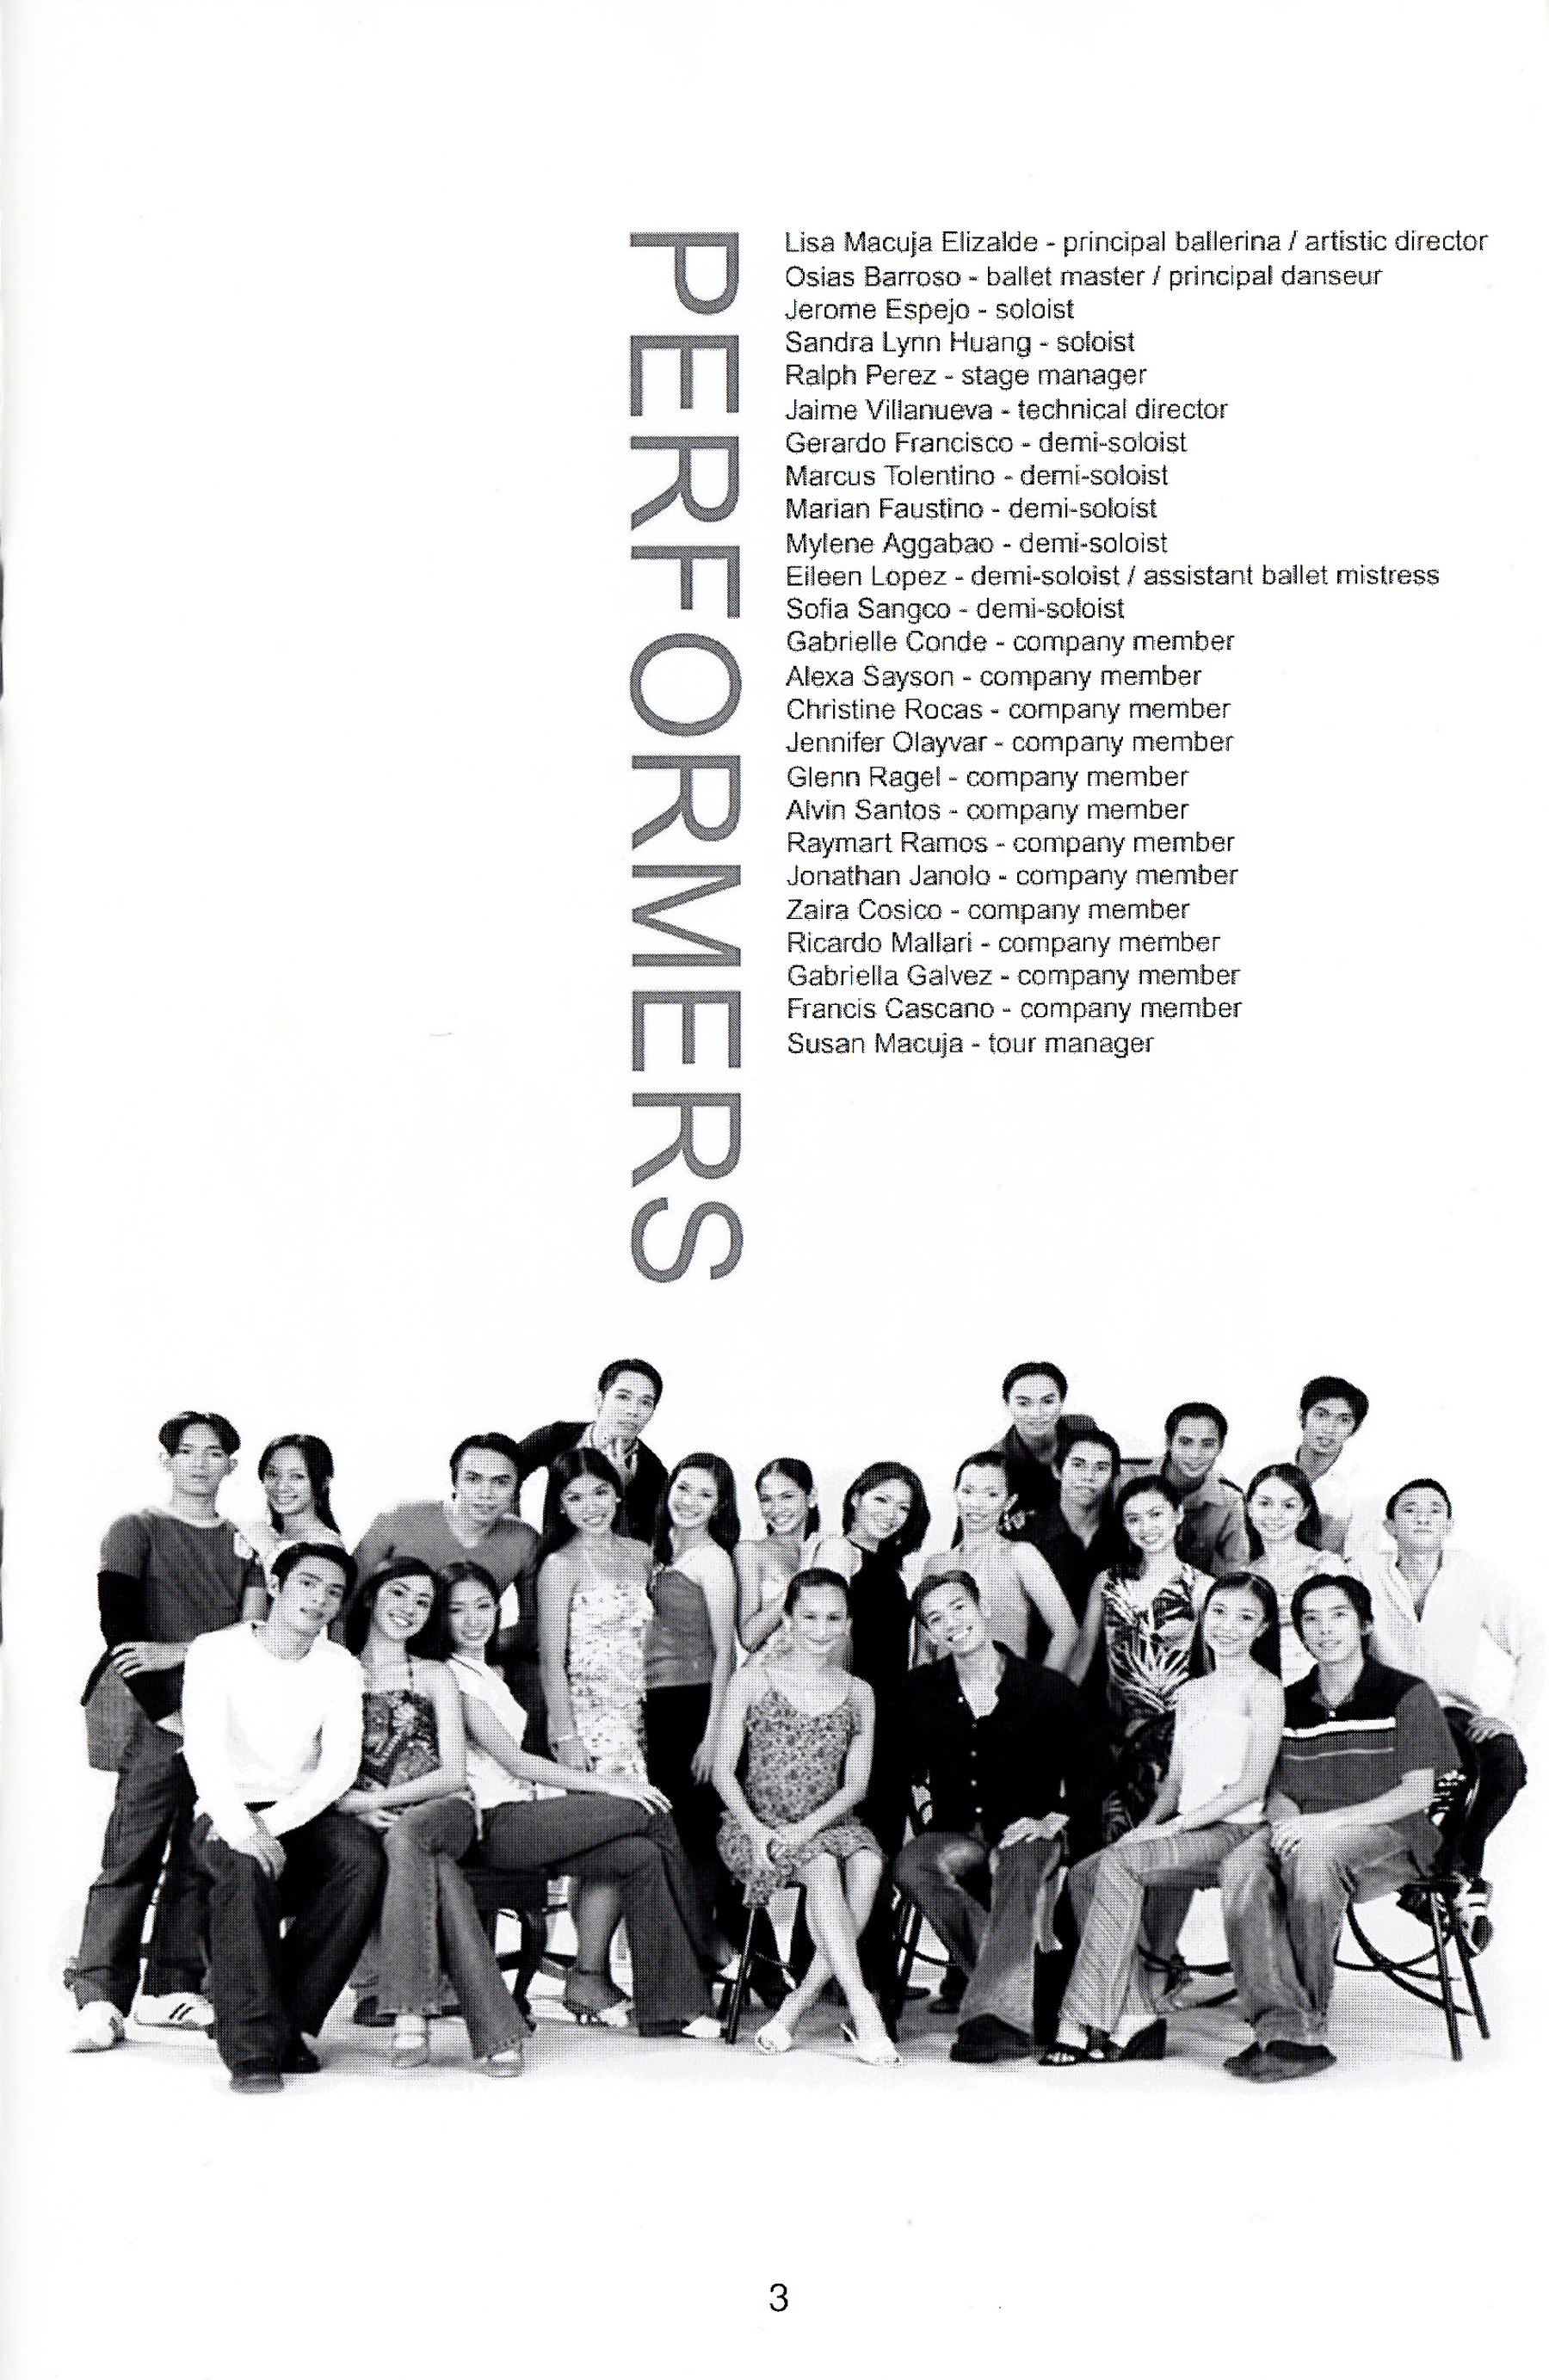 Ballet Manila's delegation for the 2004 US performance tour, as featured in the Pittsburgh souvenir program. From the Ballet Manila Archives collection